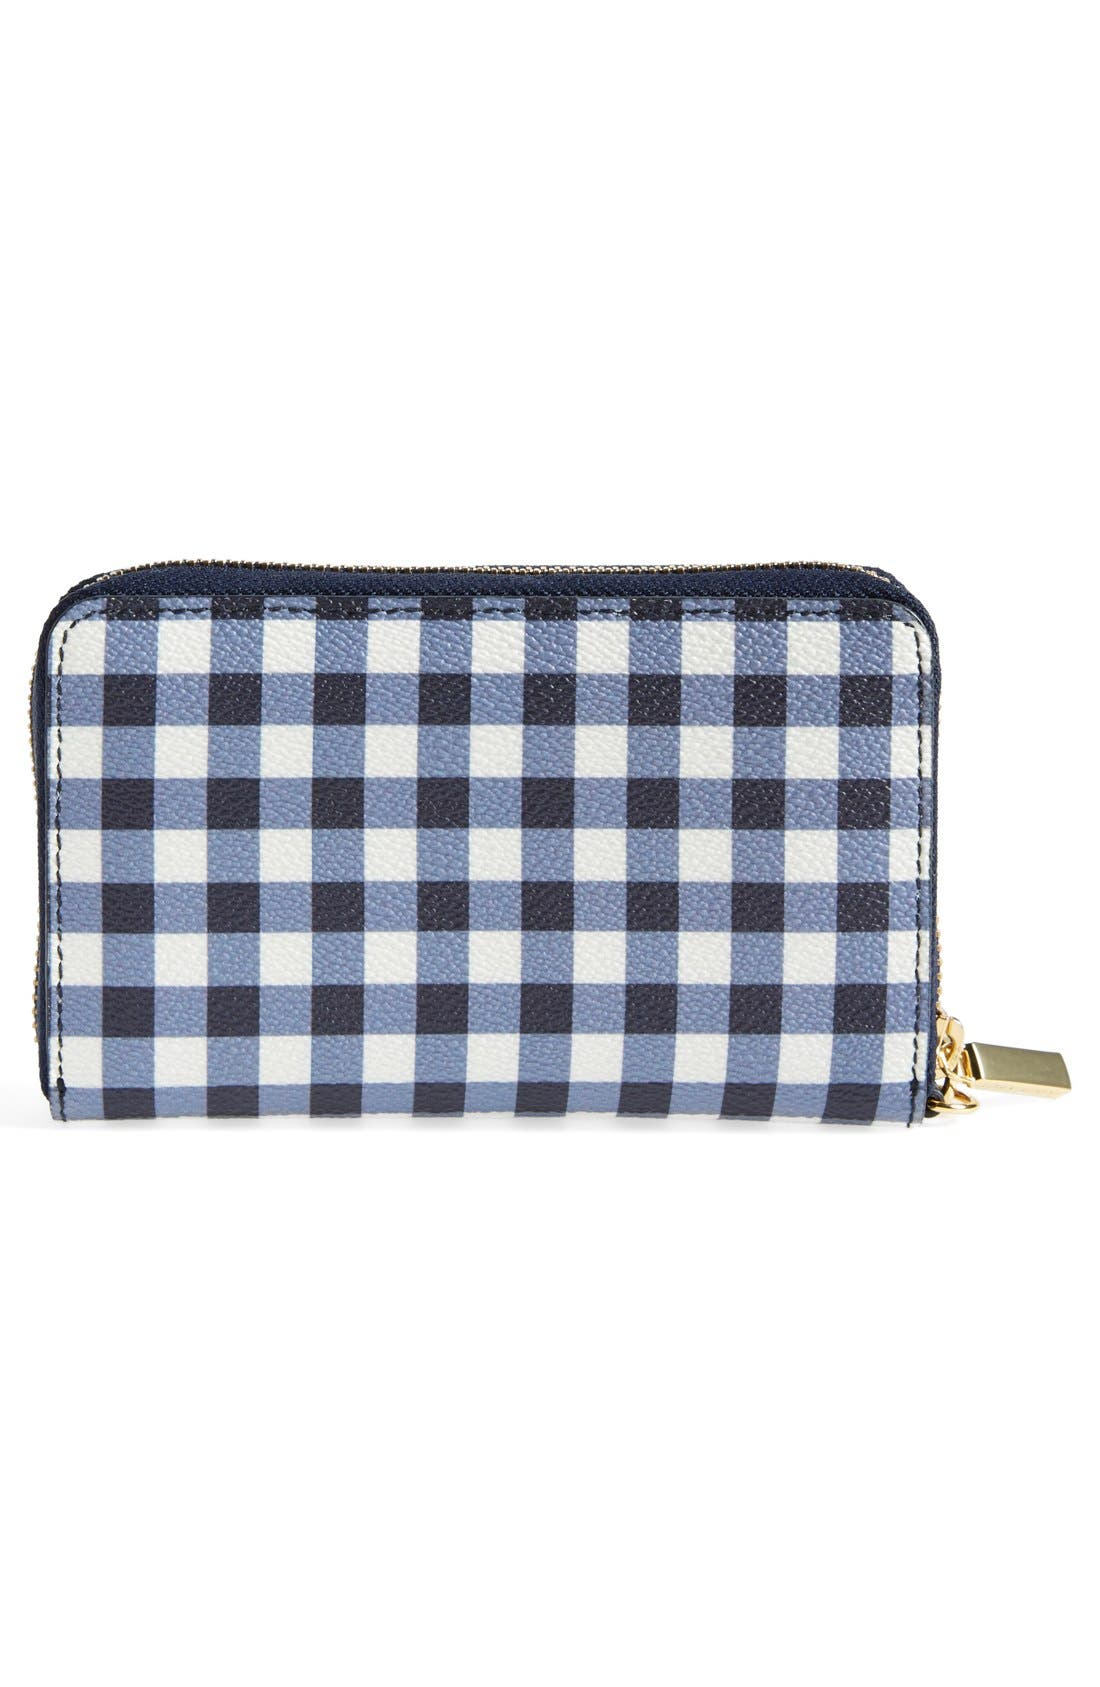 Alternate Image 3  - Tory Burch 'Robinson' Phone Wallet